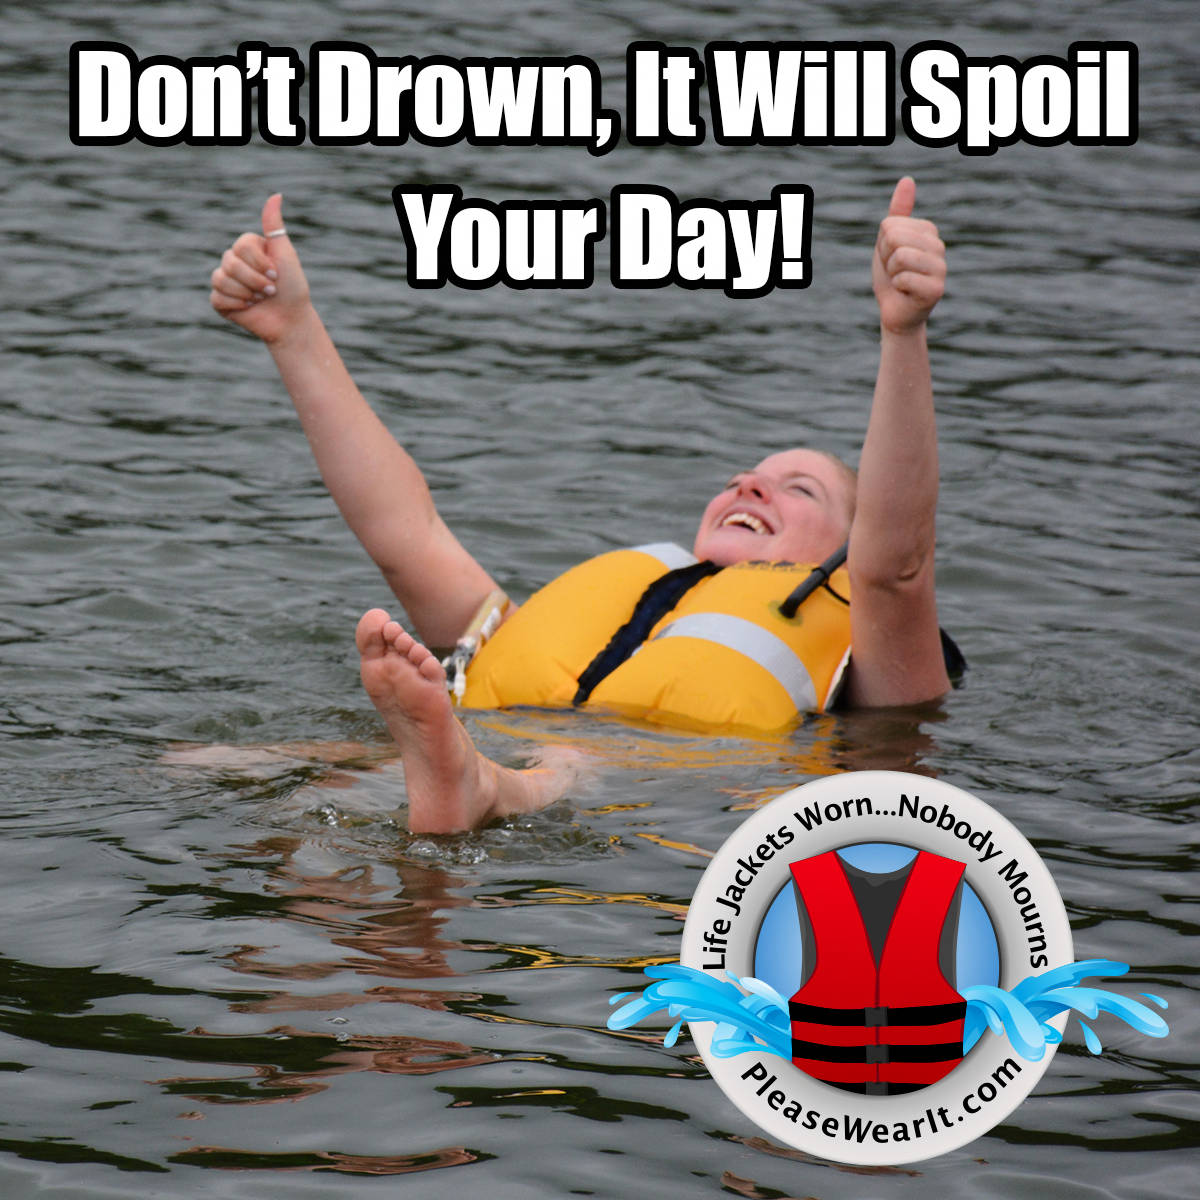 Don't drown, it will spoil your day!